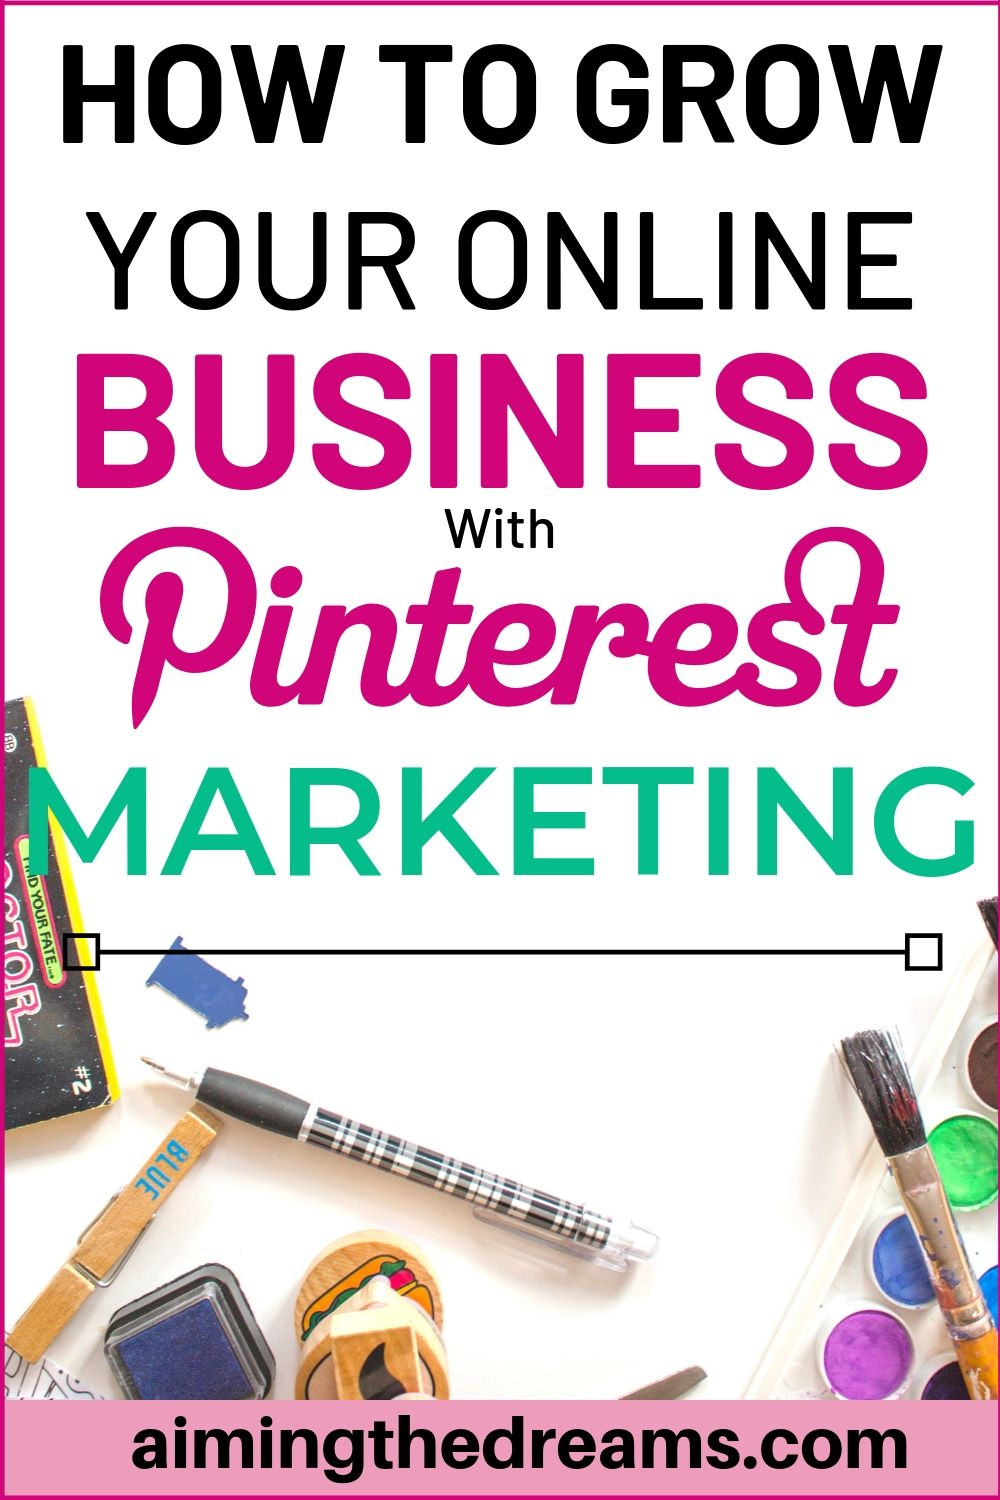 How to grow online business with Pinterest marketing strategies. Pinterest can be huge for the businesses.